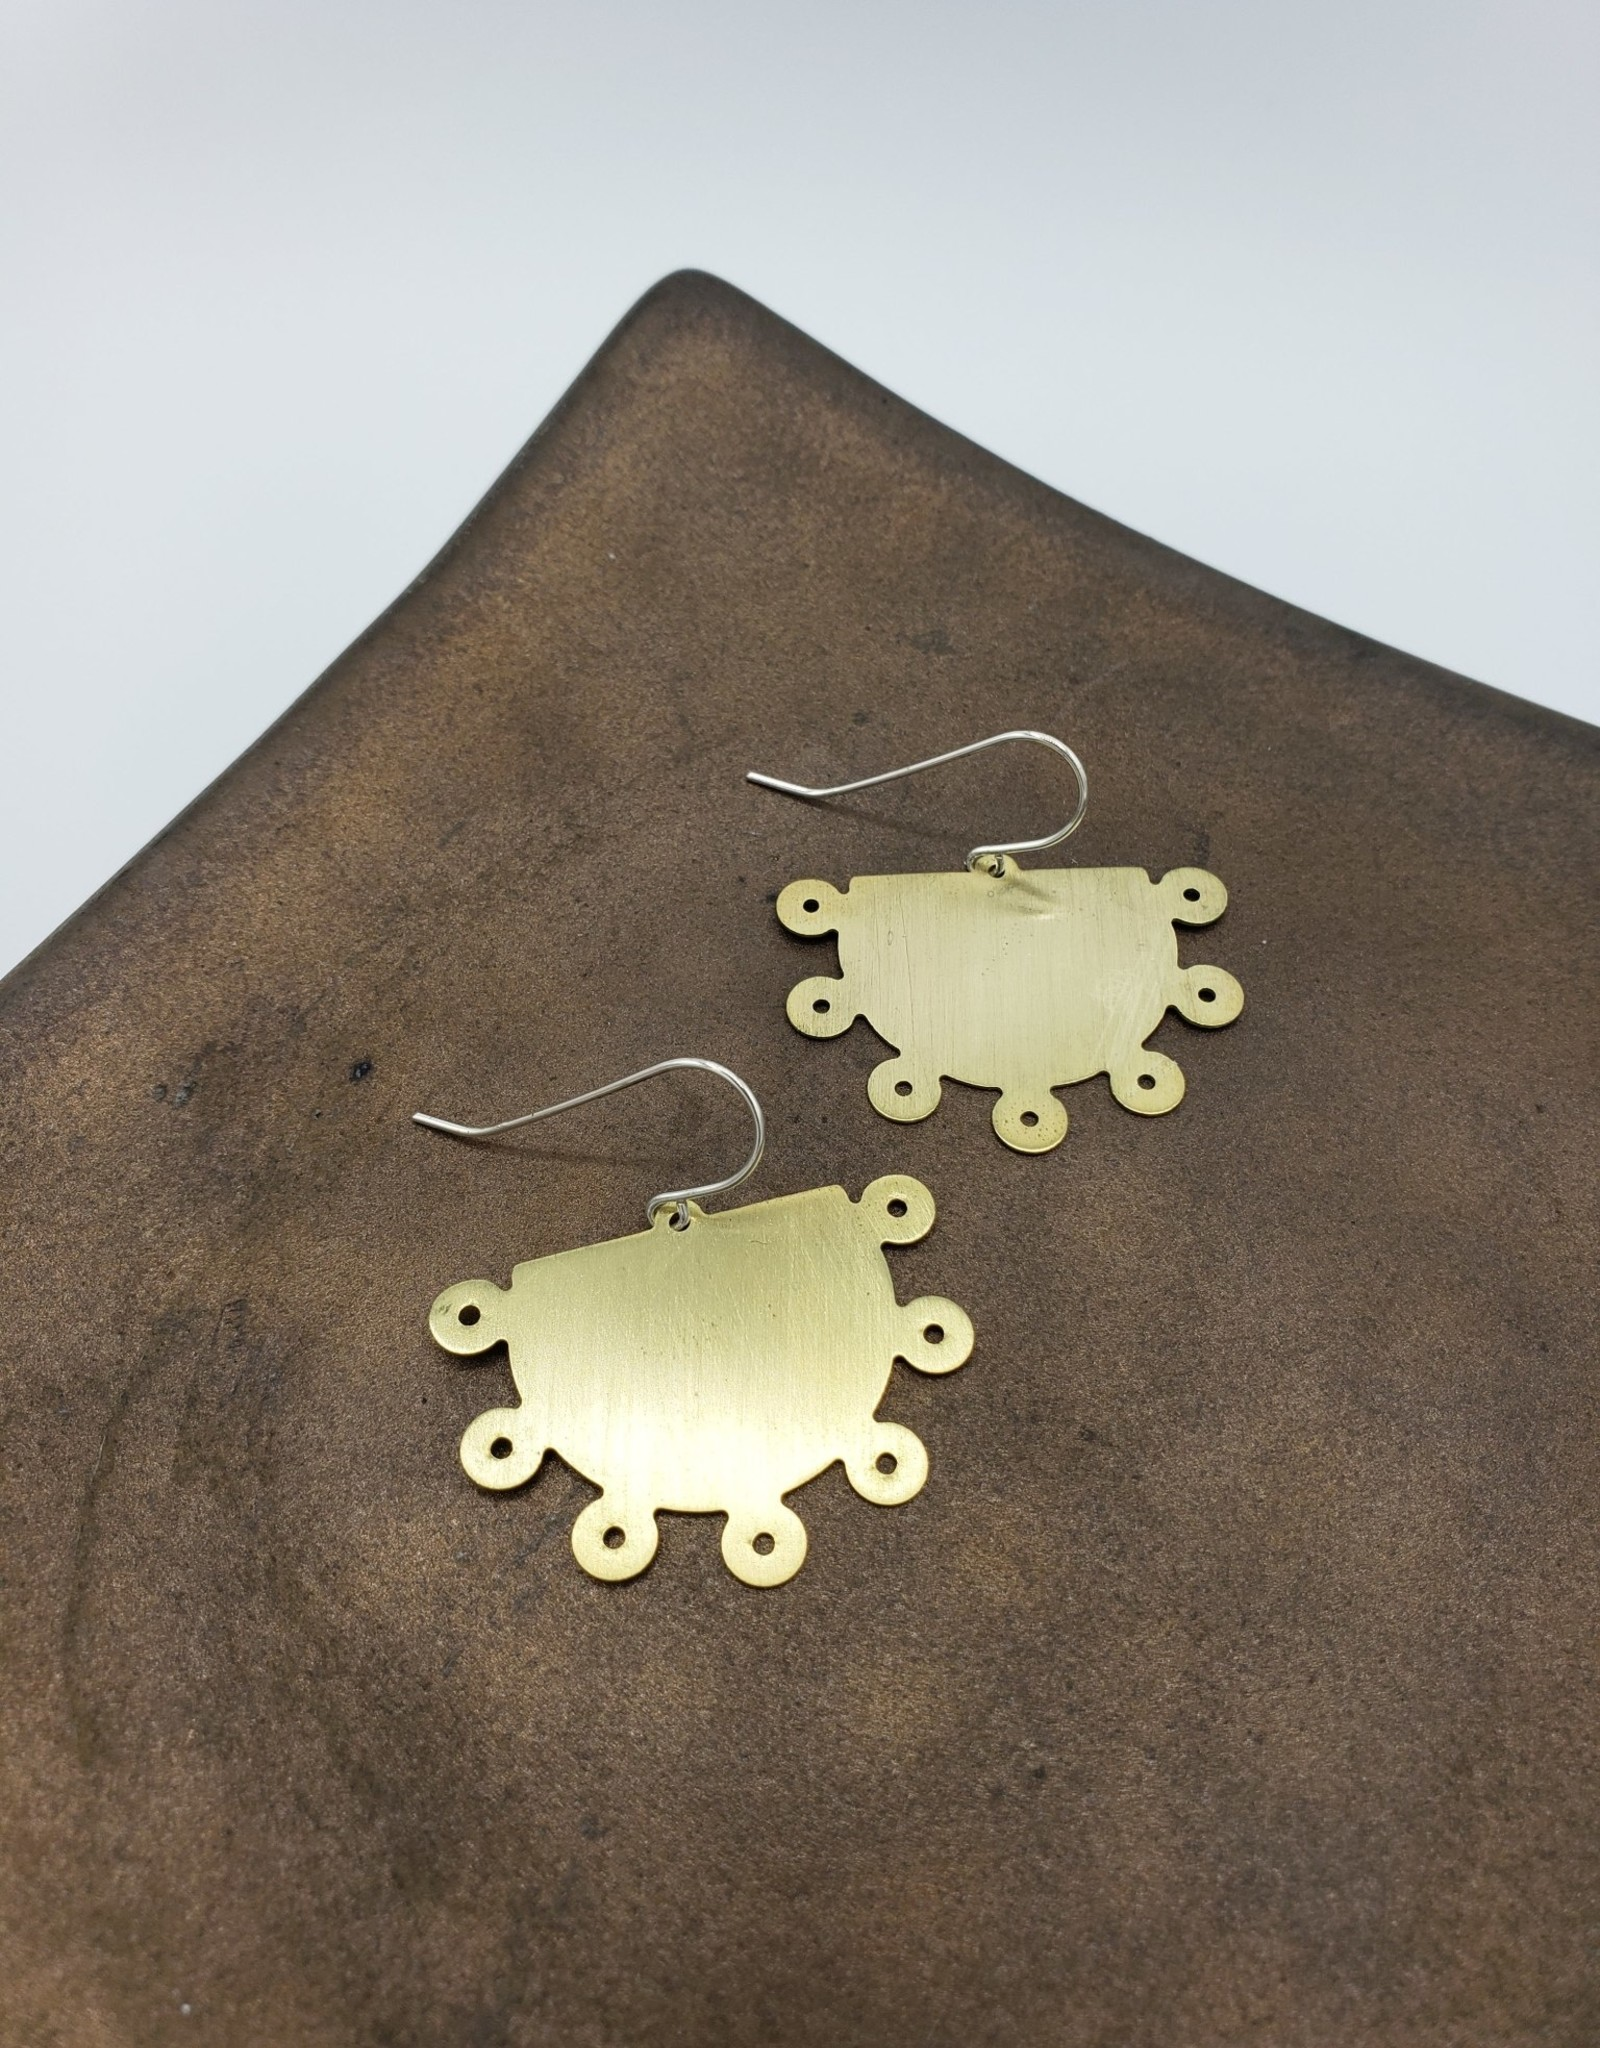 Amaree and Reese Dotted Edge Half Circle Earrings Lasercut Brass